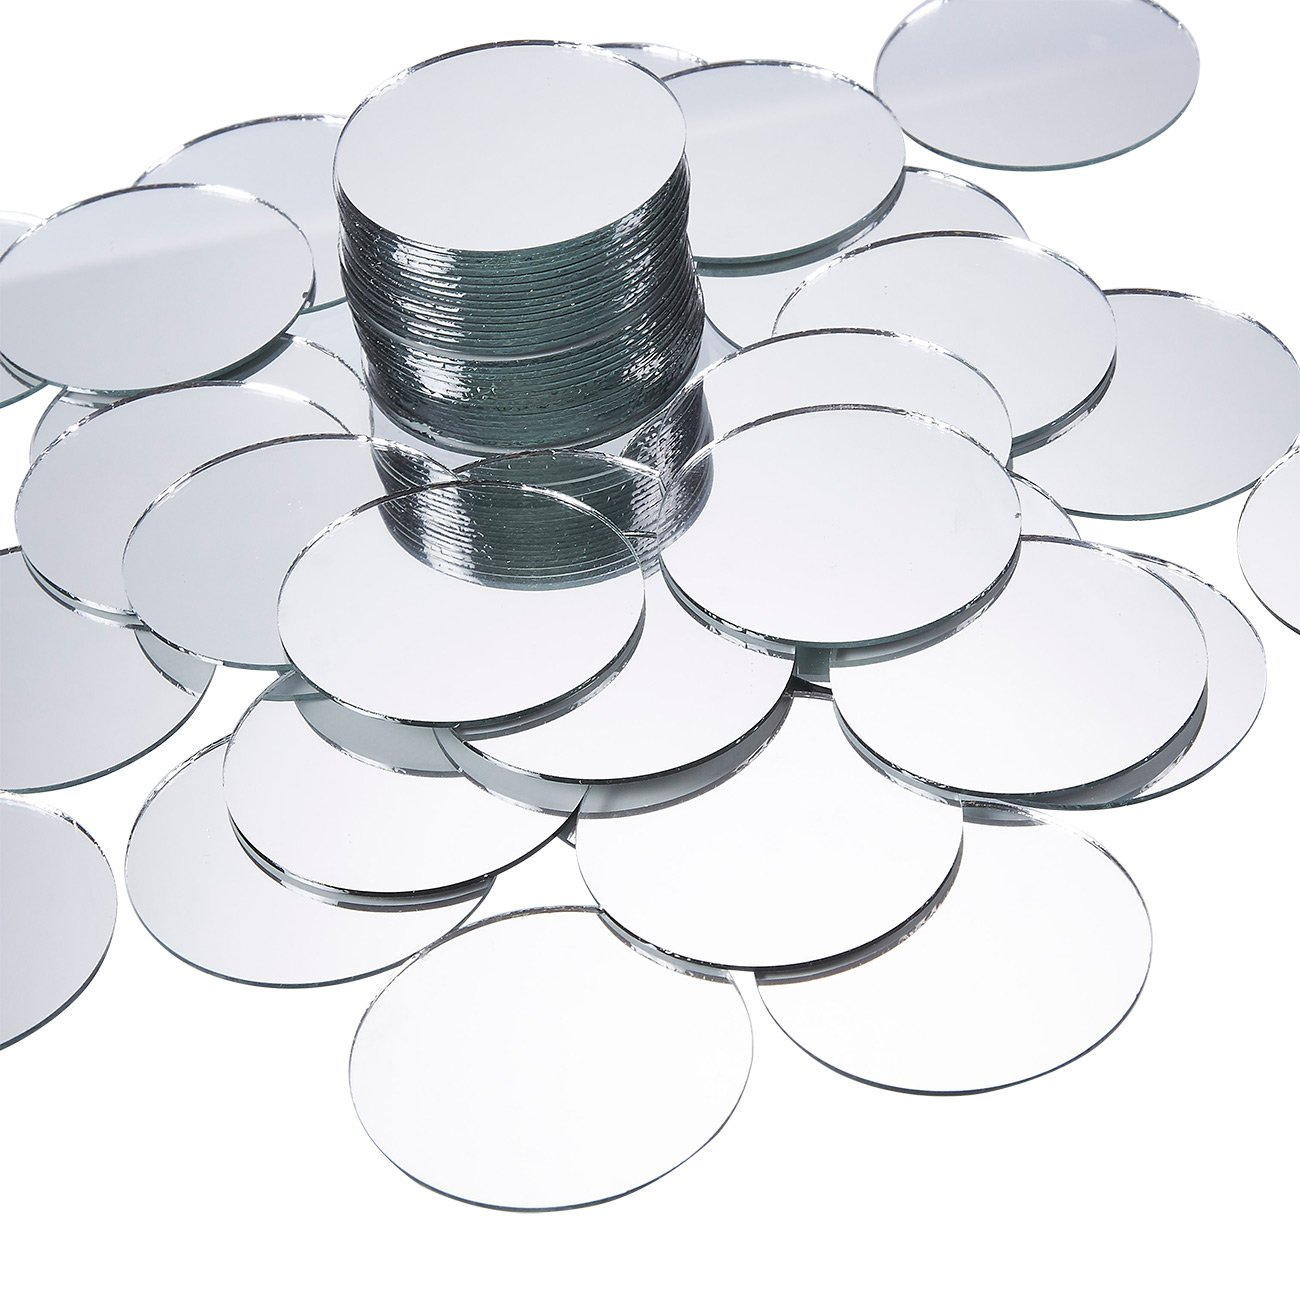 Craft Mirror - 60-Pack Mini Mirror Circles, Glass Mosaic Tile Pieces for Home Decor, DIY Craft Projects, 2-Inch Diameter by Juvale (Image #3)